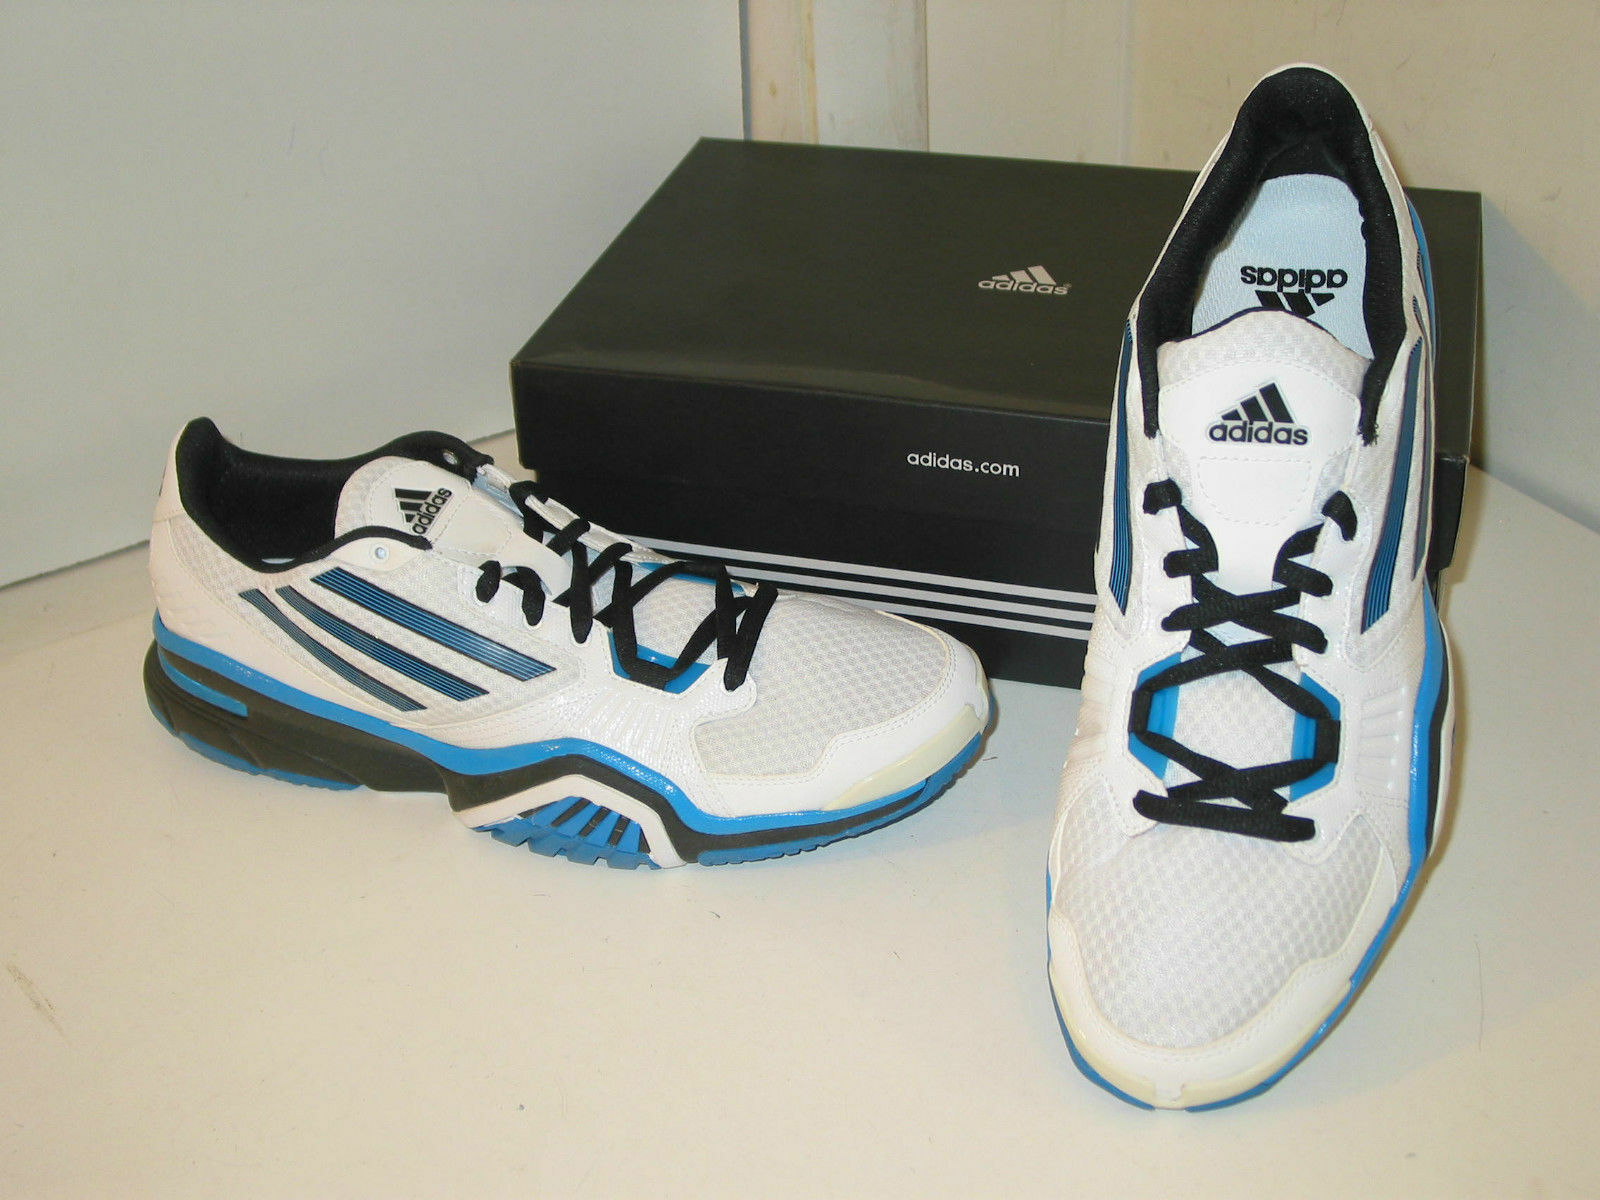 Adidas Optigon III 3 Light Trainer Running White & Blue Sneakers Shoes Mens 12.5 The latest discount shoes for men and women